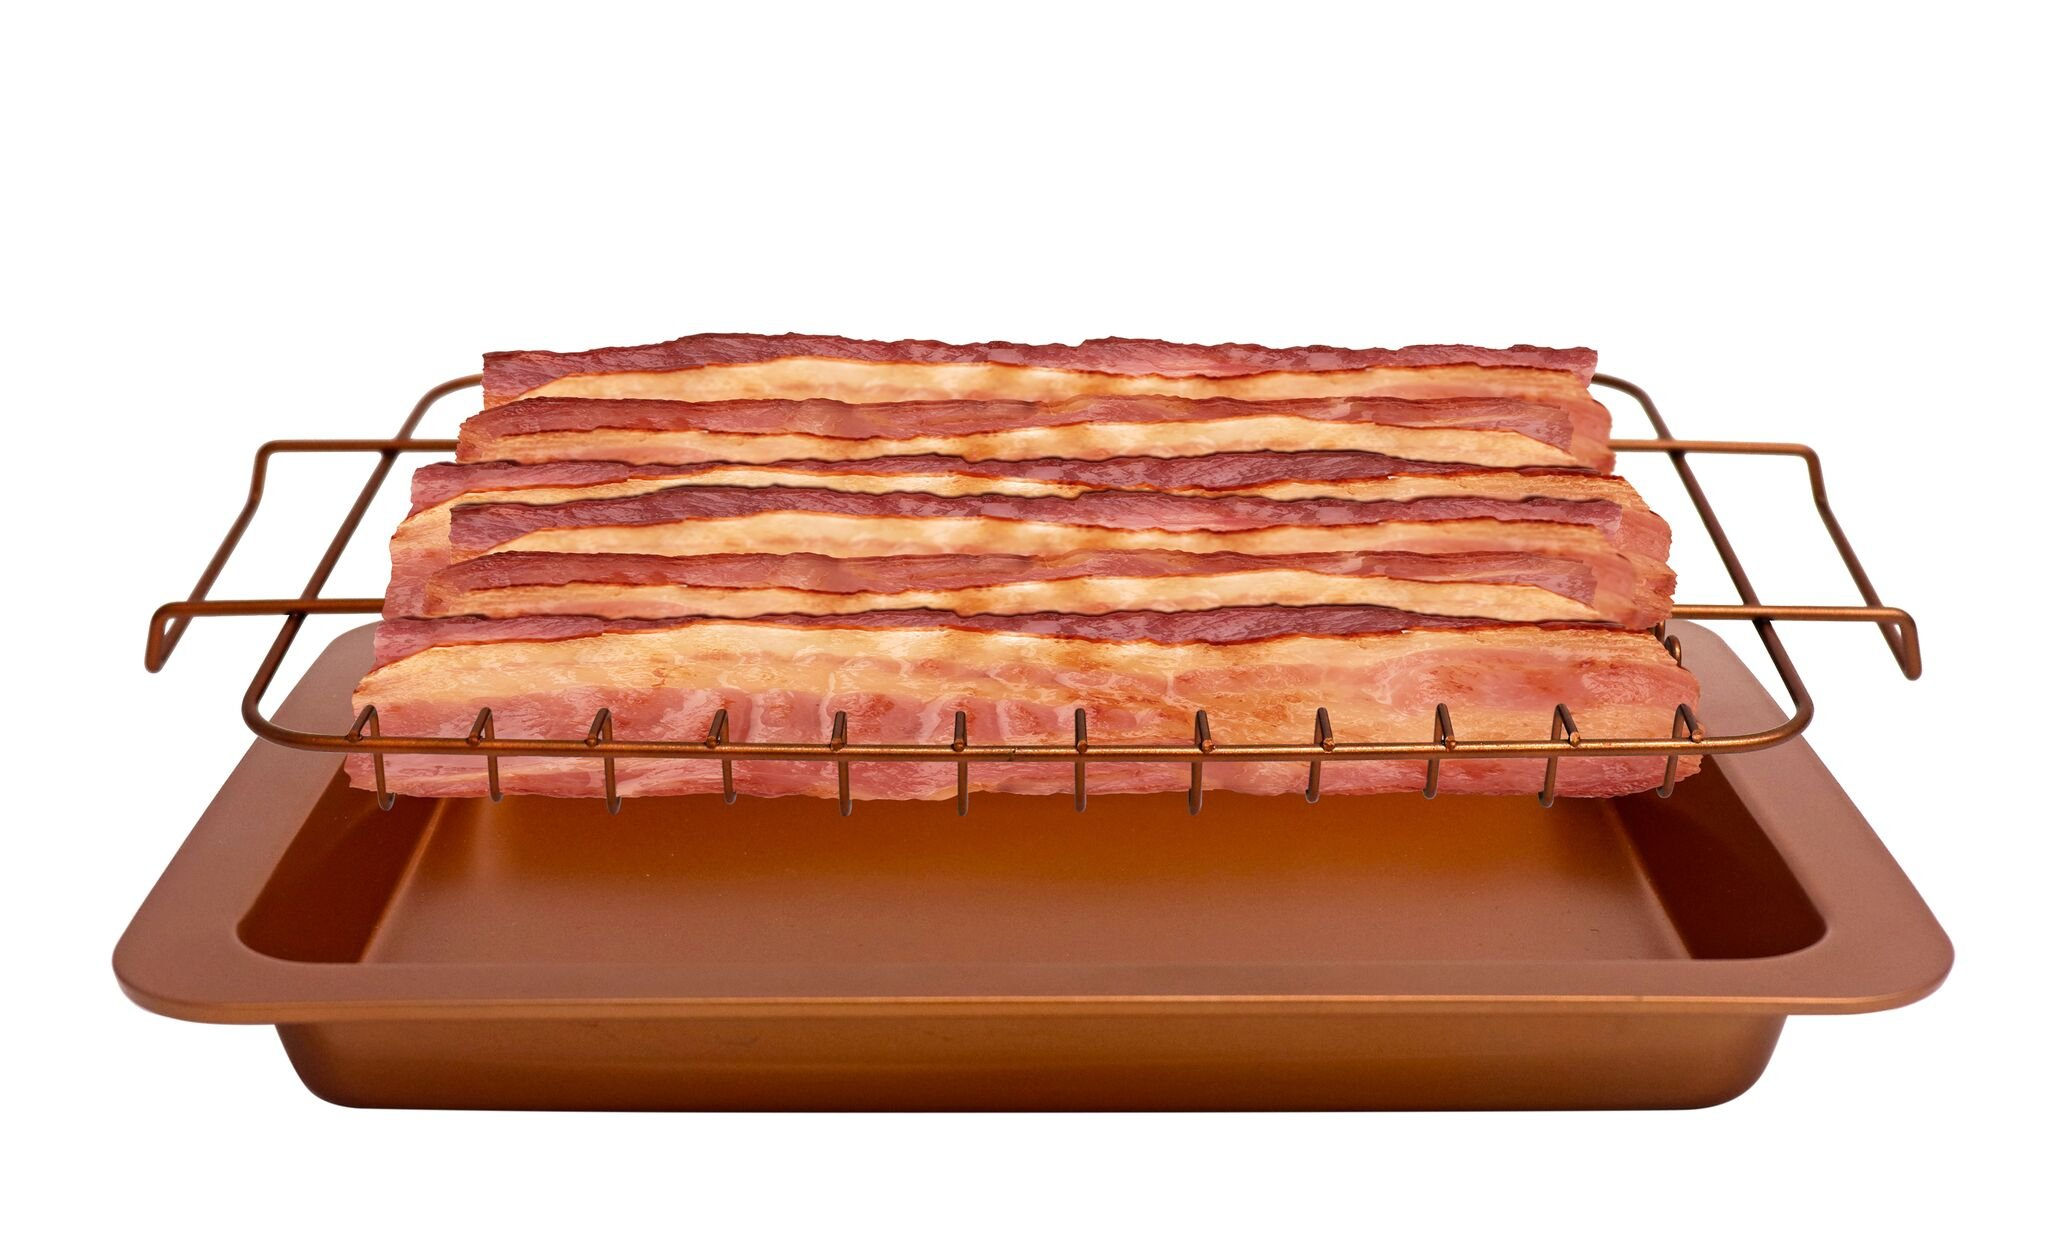 Bacon Bonanza by Gotham Steel Oven Healthier Bacon Drip Rack Tray with Pan – As Seen on TV by GOTHAM STEEL (Image #2)